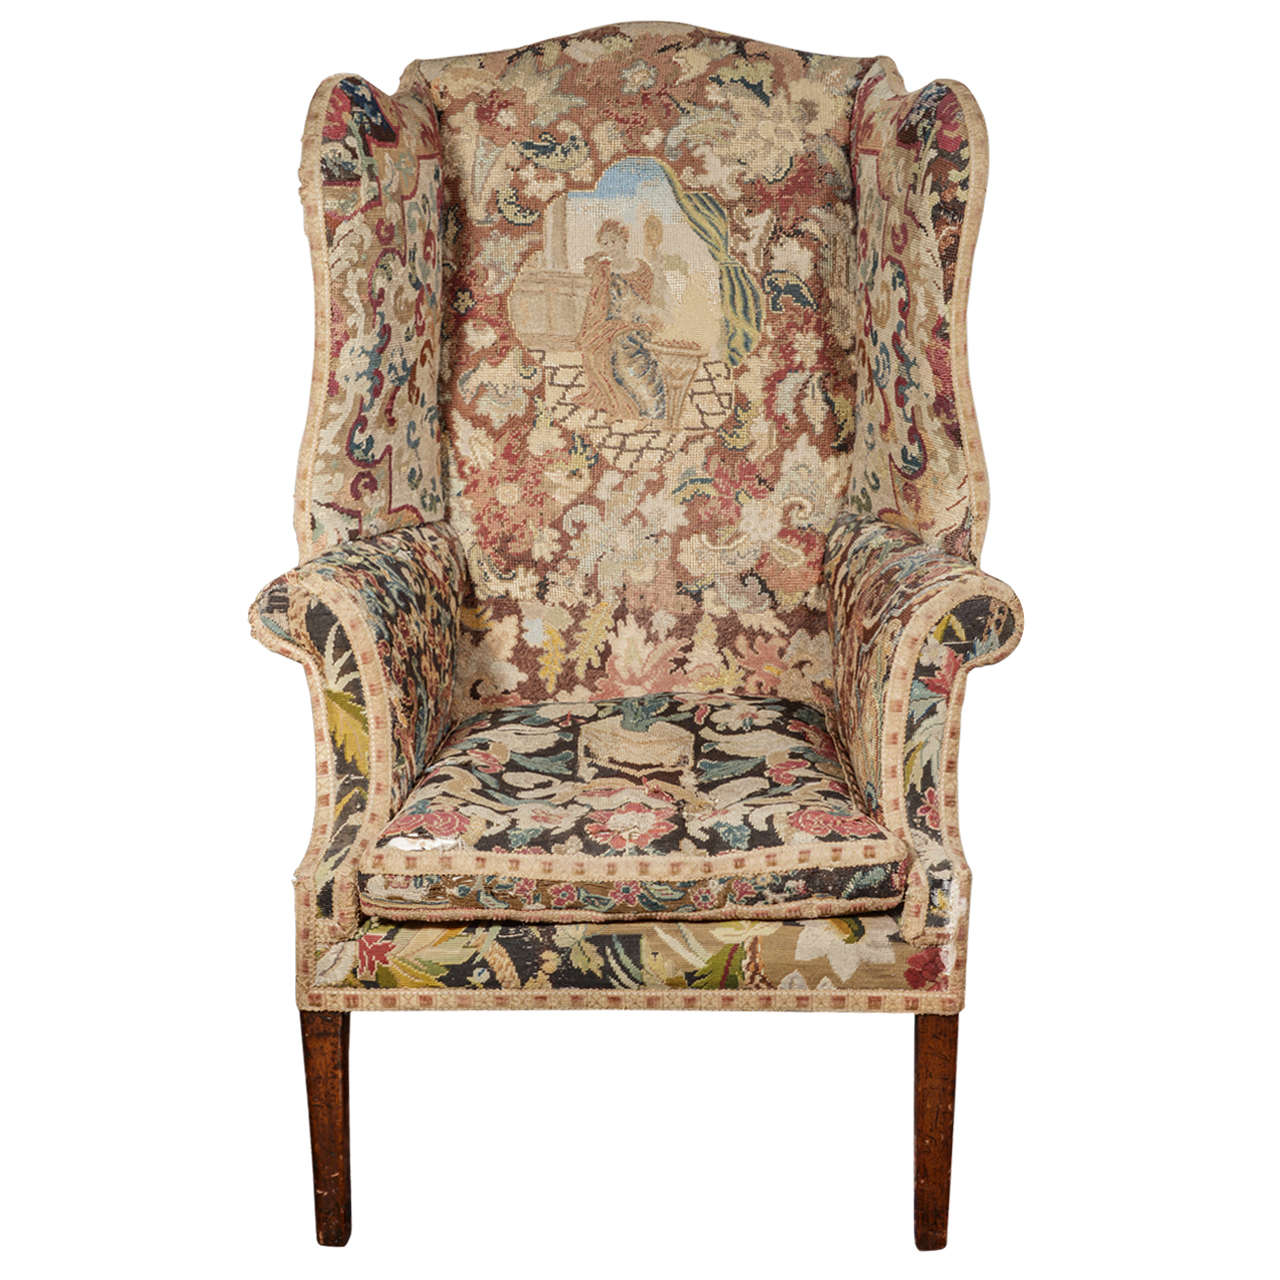 George III Needlework Upholstered Wingback Armchair